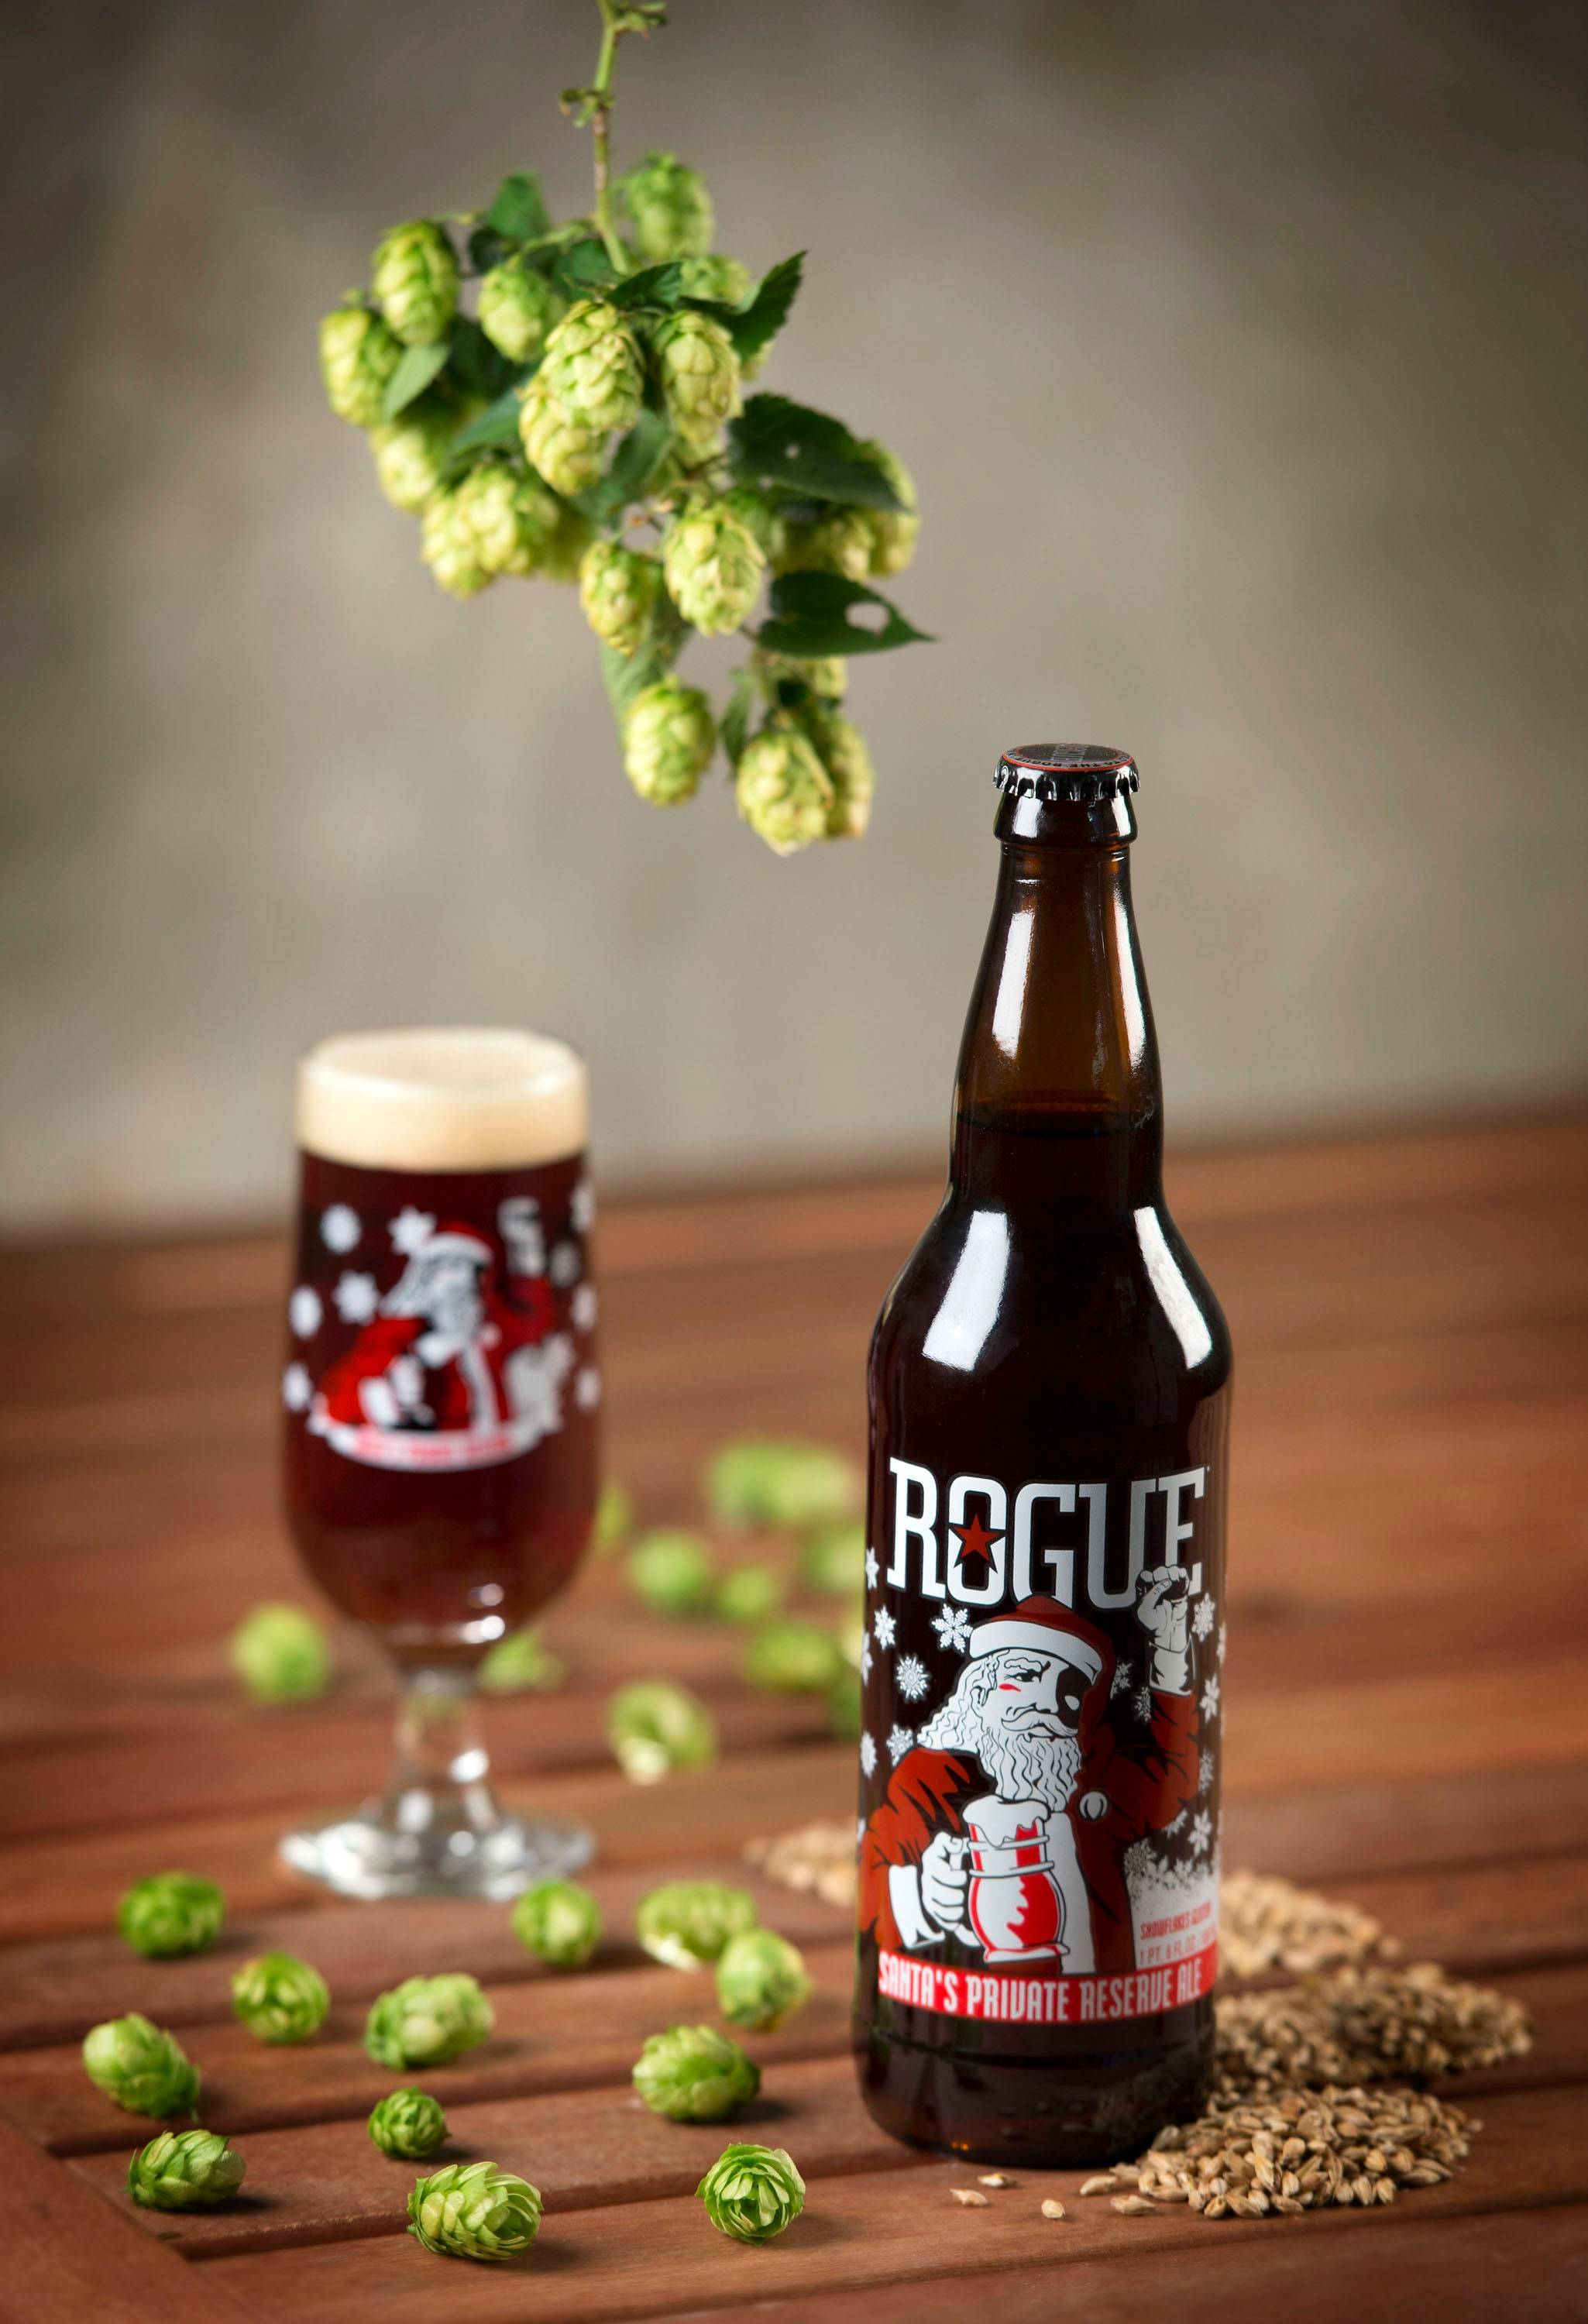 This product image released by Rogue Ales of Newport, Ore., shows a bottle of the company's Santa's Private Reserve. Rogue Aleís annual holiday offering is a double-hopped red ale made with hops and barley from the breweryís own farm. The brewery and distillery founded in 1988 even malted the grain in the beer themselves. The result is a two-time World Beer Championship gold medal-winning amber beer with a roasted caramel malt flavor and a hoppy pine finish. (AP Photo/Rogue Ales)